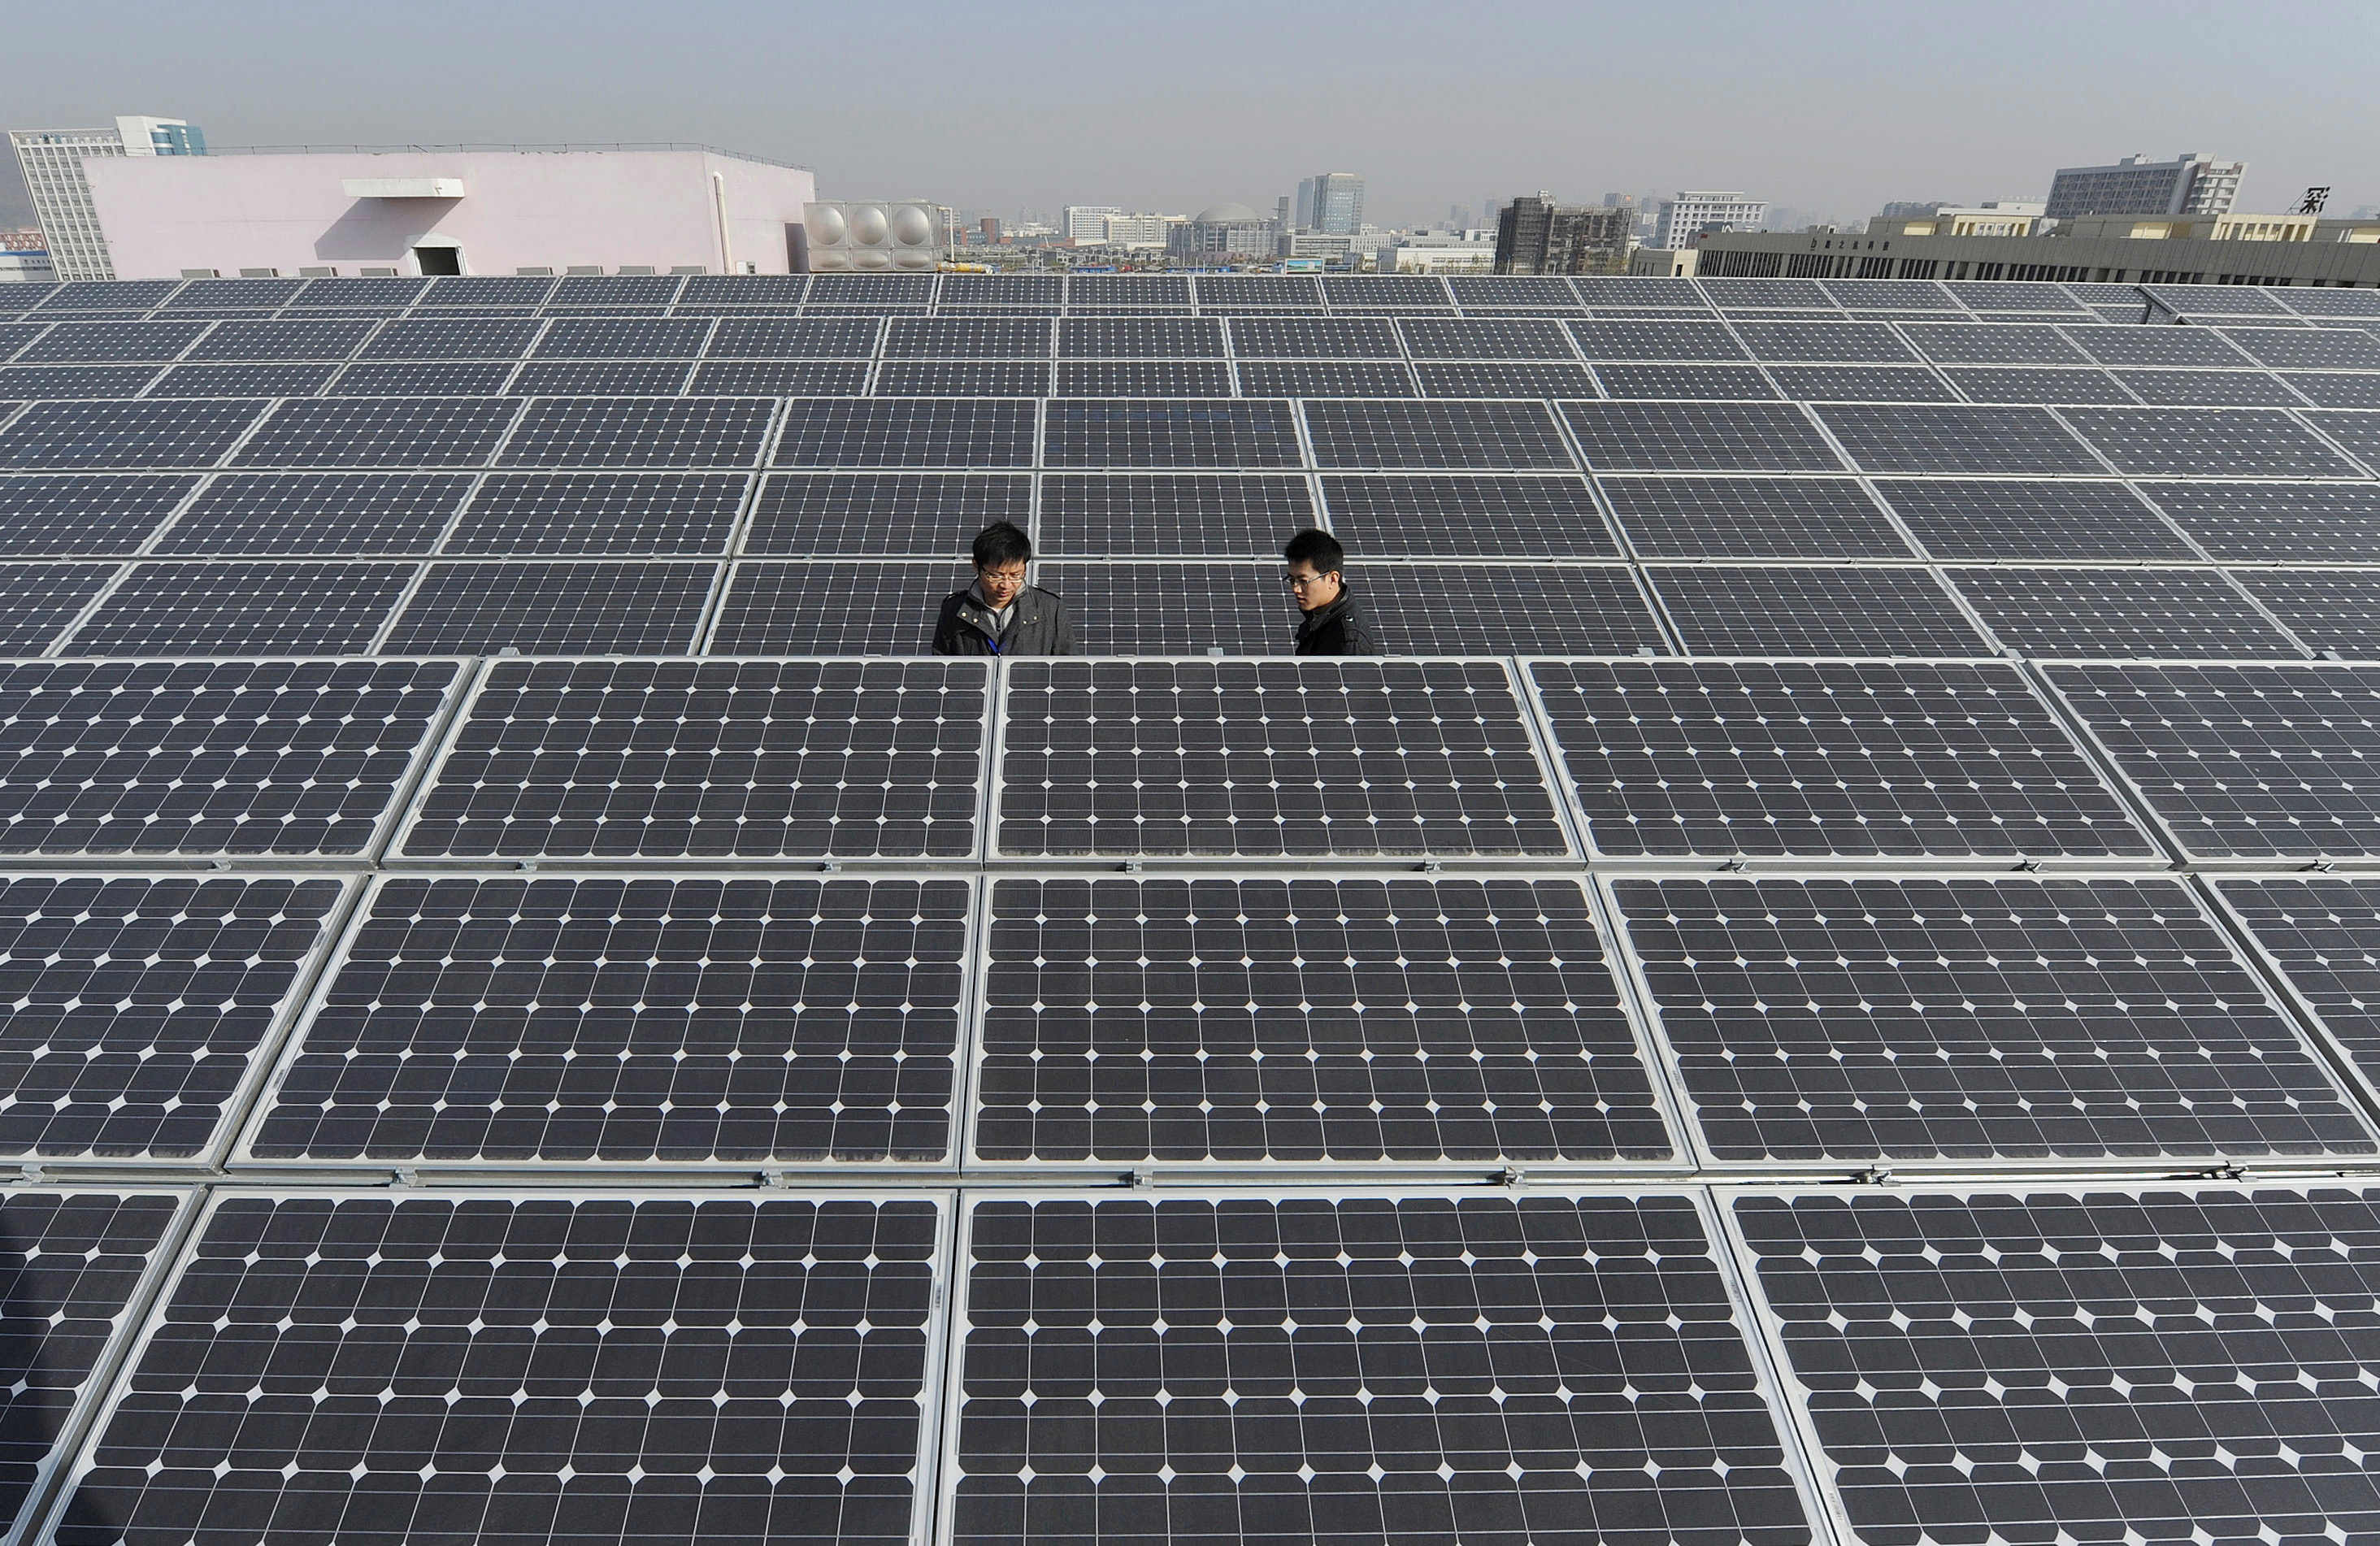 Employees inspect newly-made solar panels on the roof of a Sungrow Power Supply Co., Ltd factory in Hefei, Anhui province December 8, 2010. REUTERS/Stringer